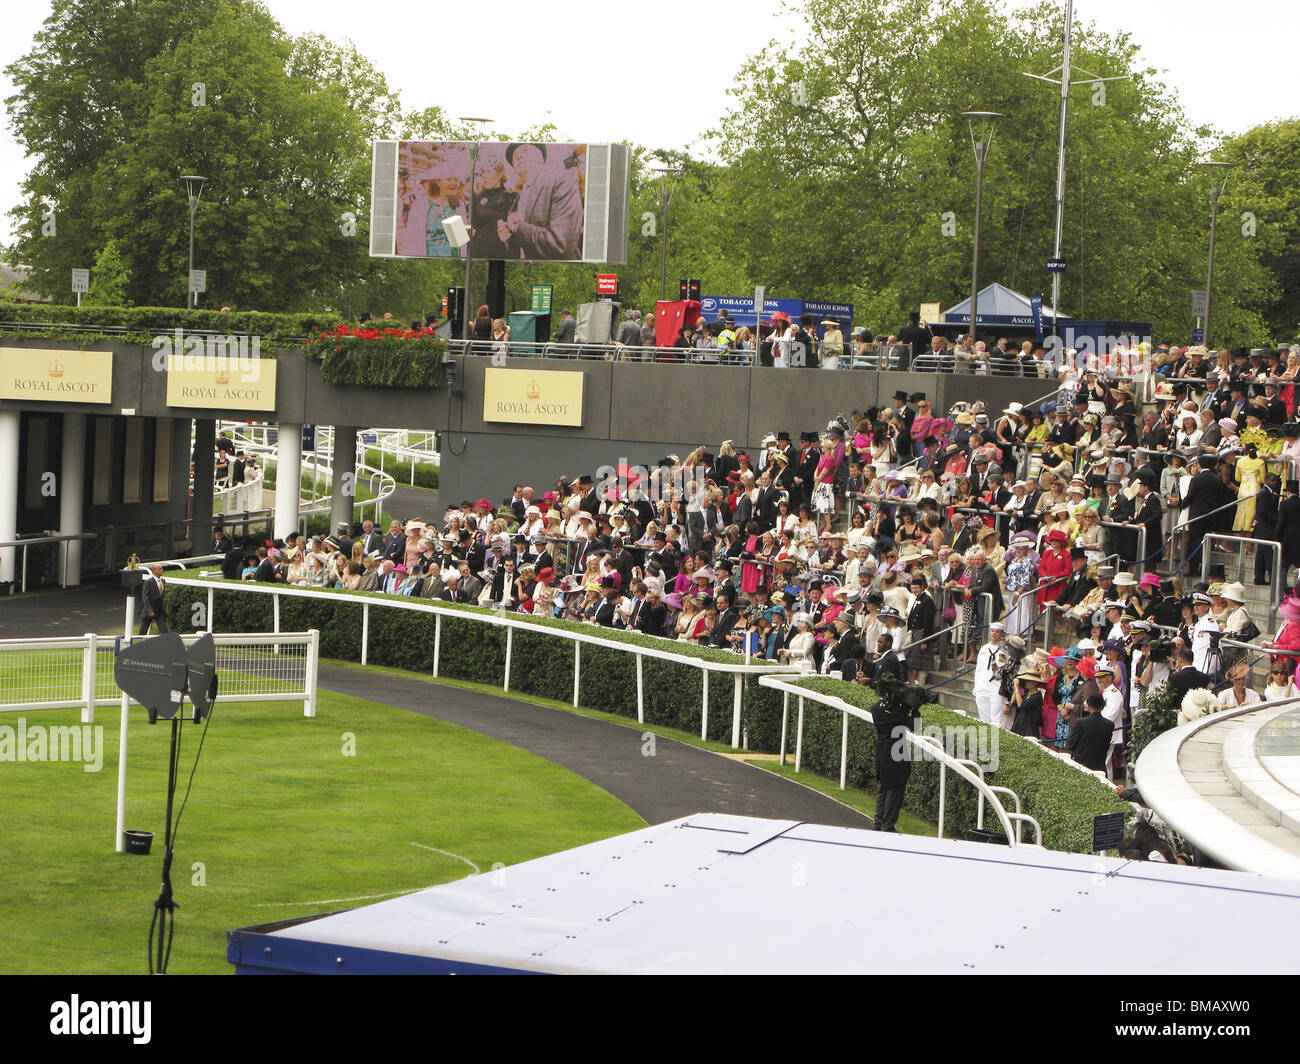 Royal Ascot pageant ceremony,part of the season in the uk - Stock Image